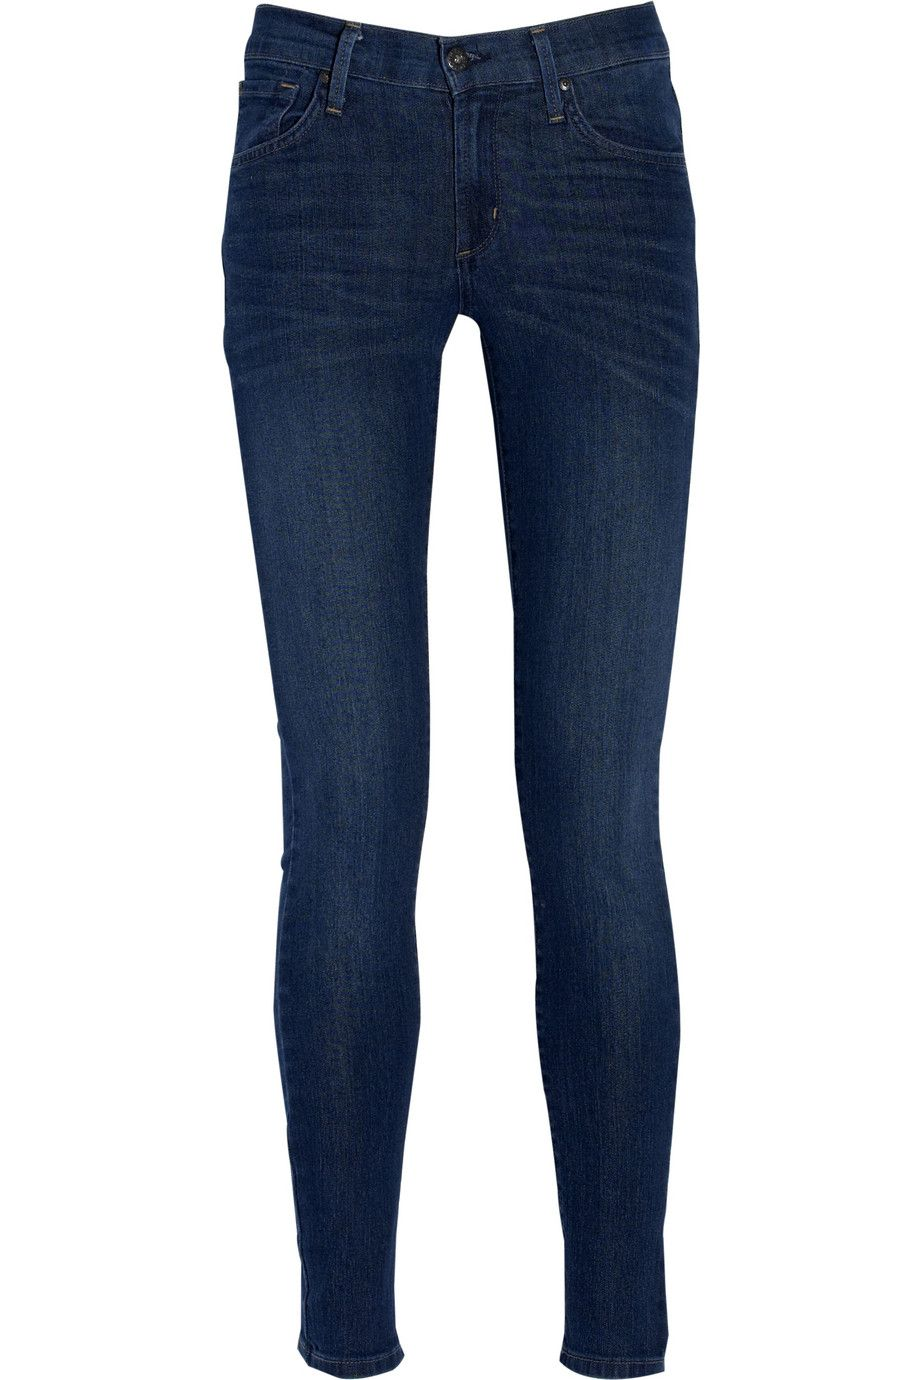 How to Wear Skinny Jeans | Skinny jeans, Skinny and Jeans